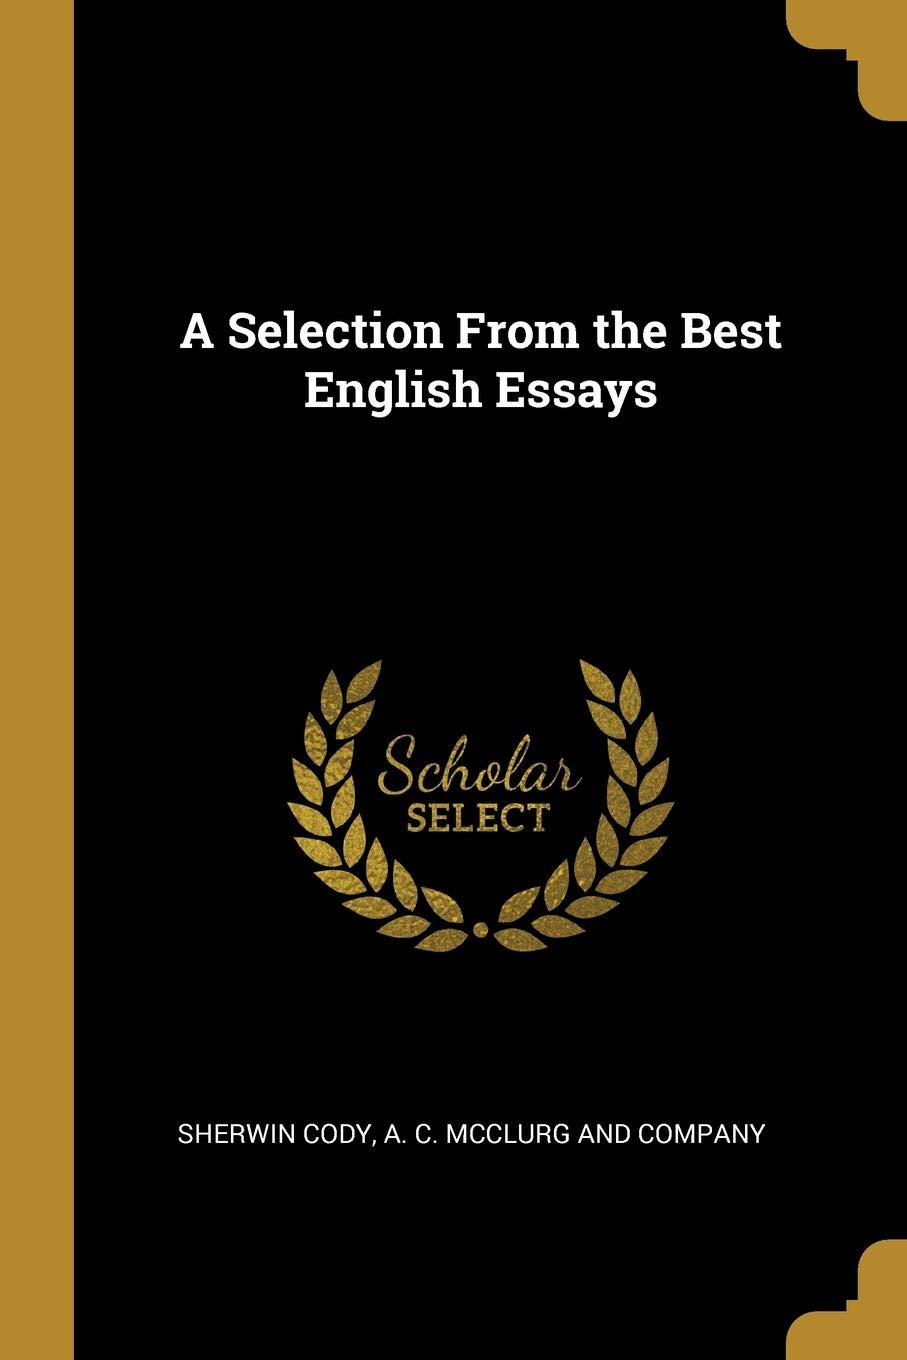 a selection from the best english essays sherwin cody